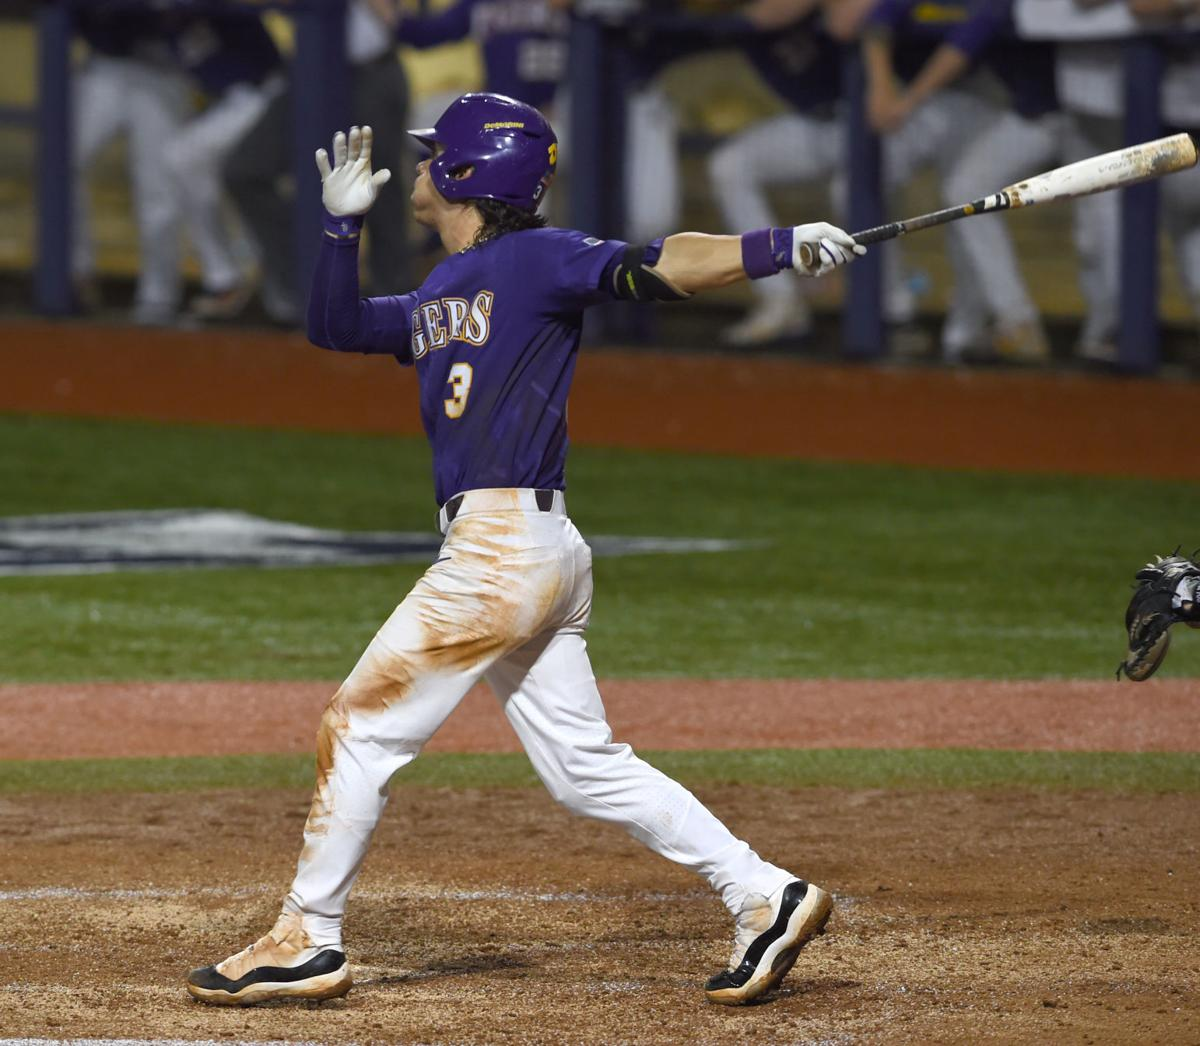 fd6c8cba566  Emotional breakdown  and  dark place  led LSU shortstop Kramer Robertson  to the top of college baseball